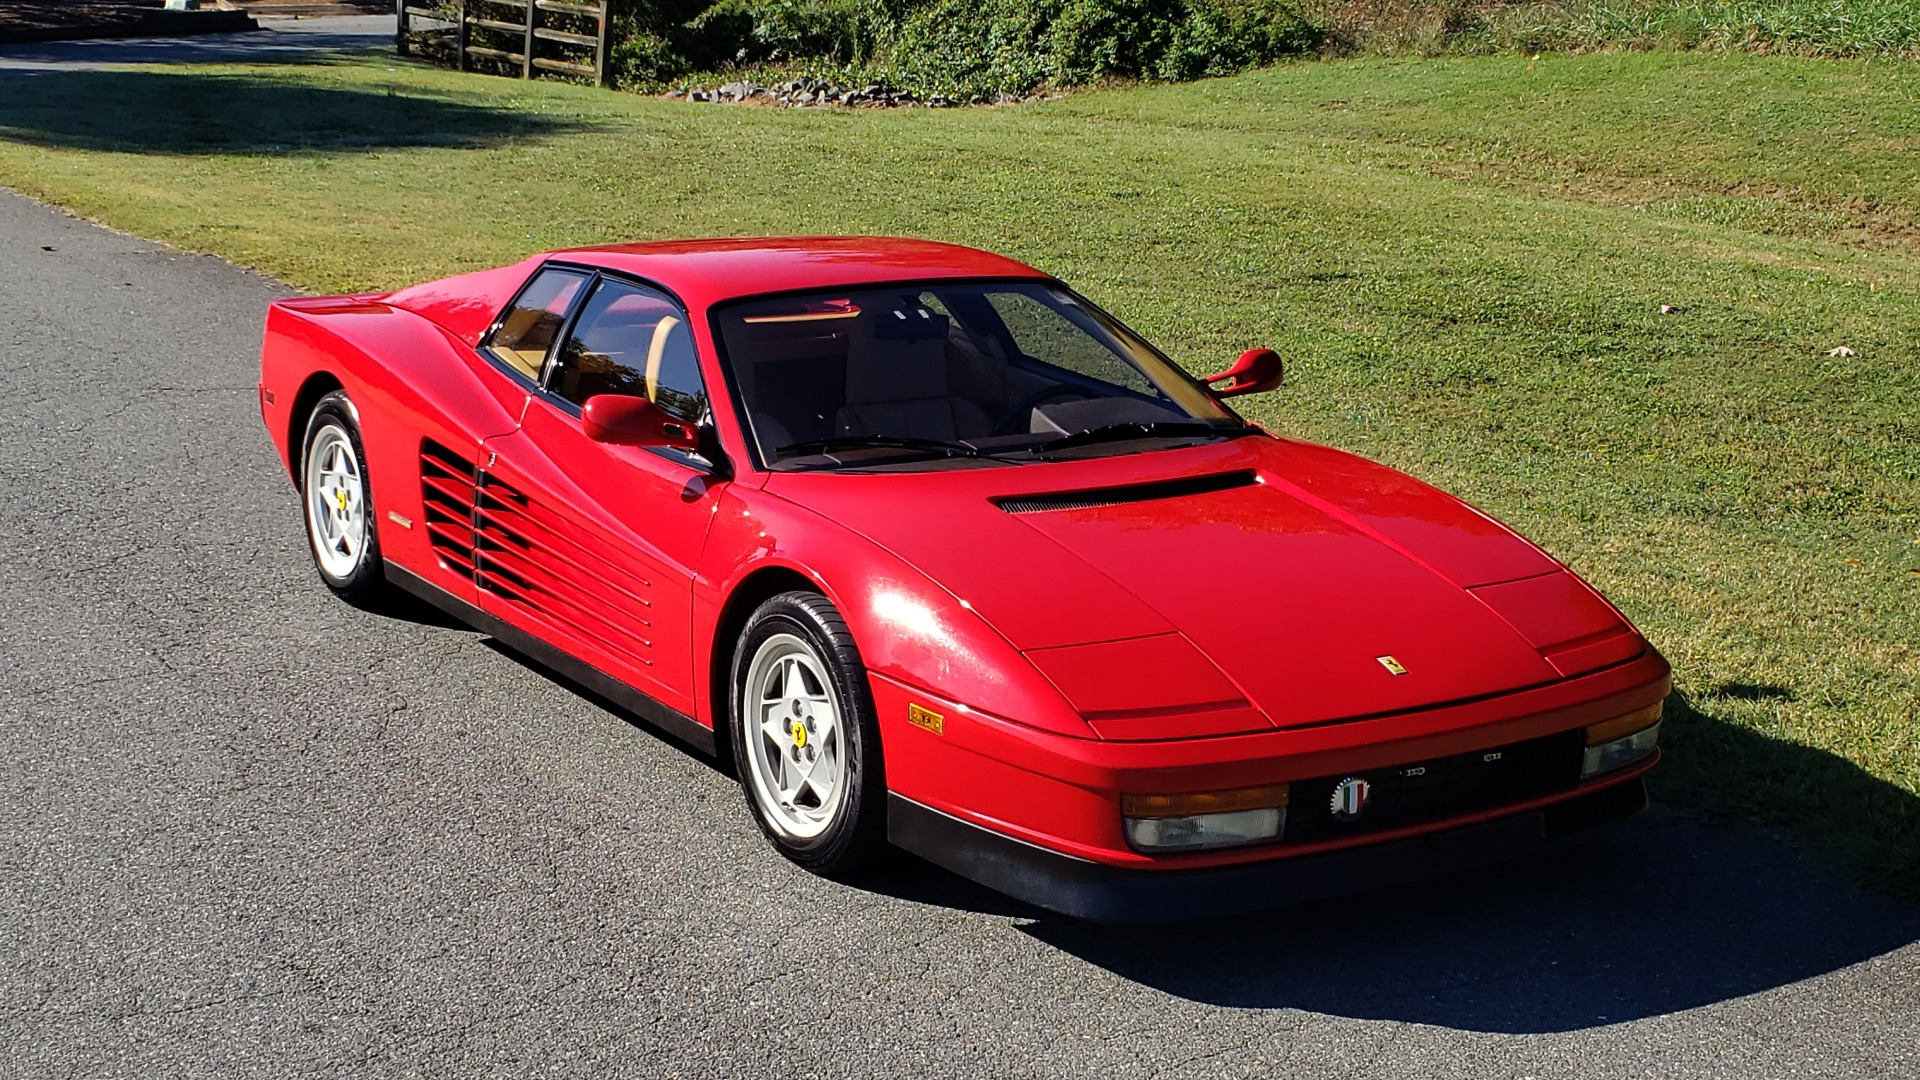 Used 1988 Ferrari TESTAROSSA COUPE / 4.9L FLAT-12 / 5-SPEED MANUAL / LOW MILES SUPER CLEAN for sale $128,999 at Formula Imports in Charlotte NC 28227 14